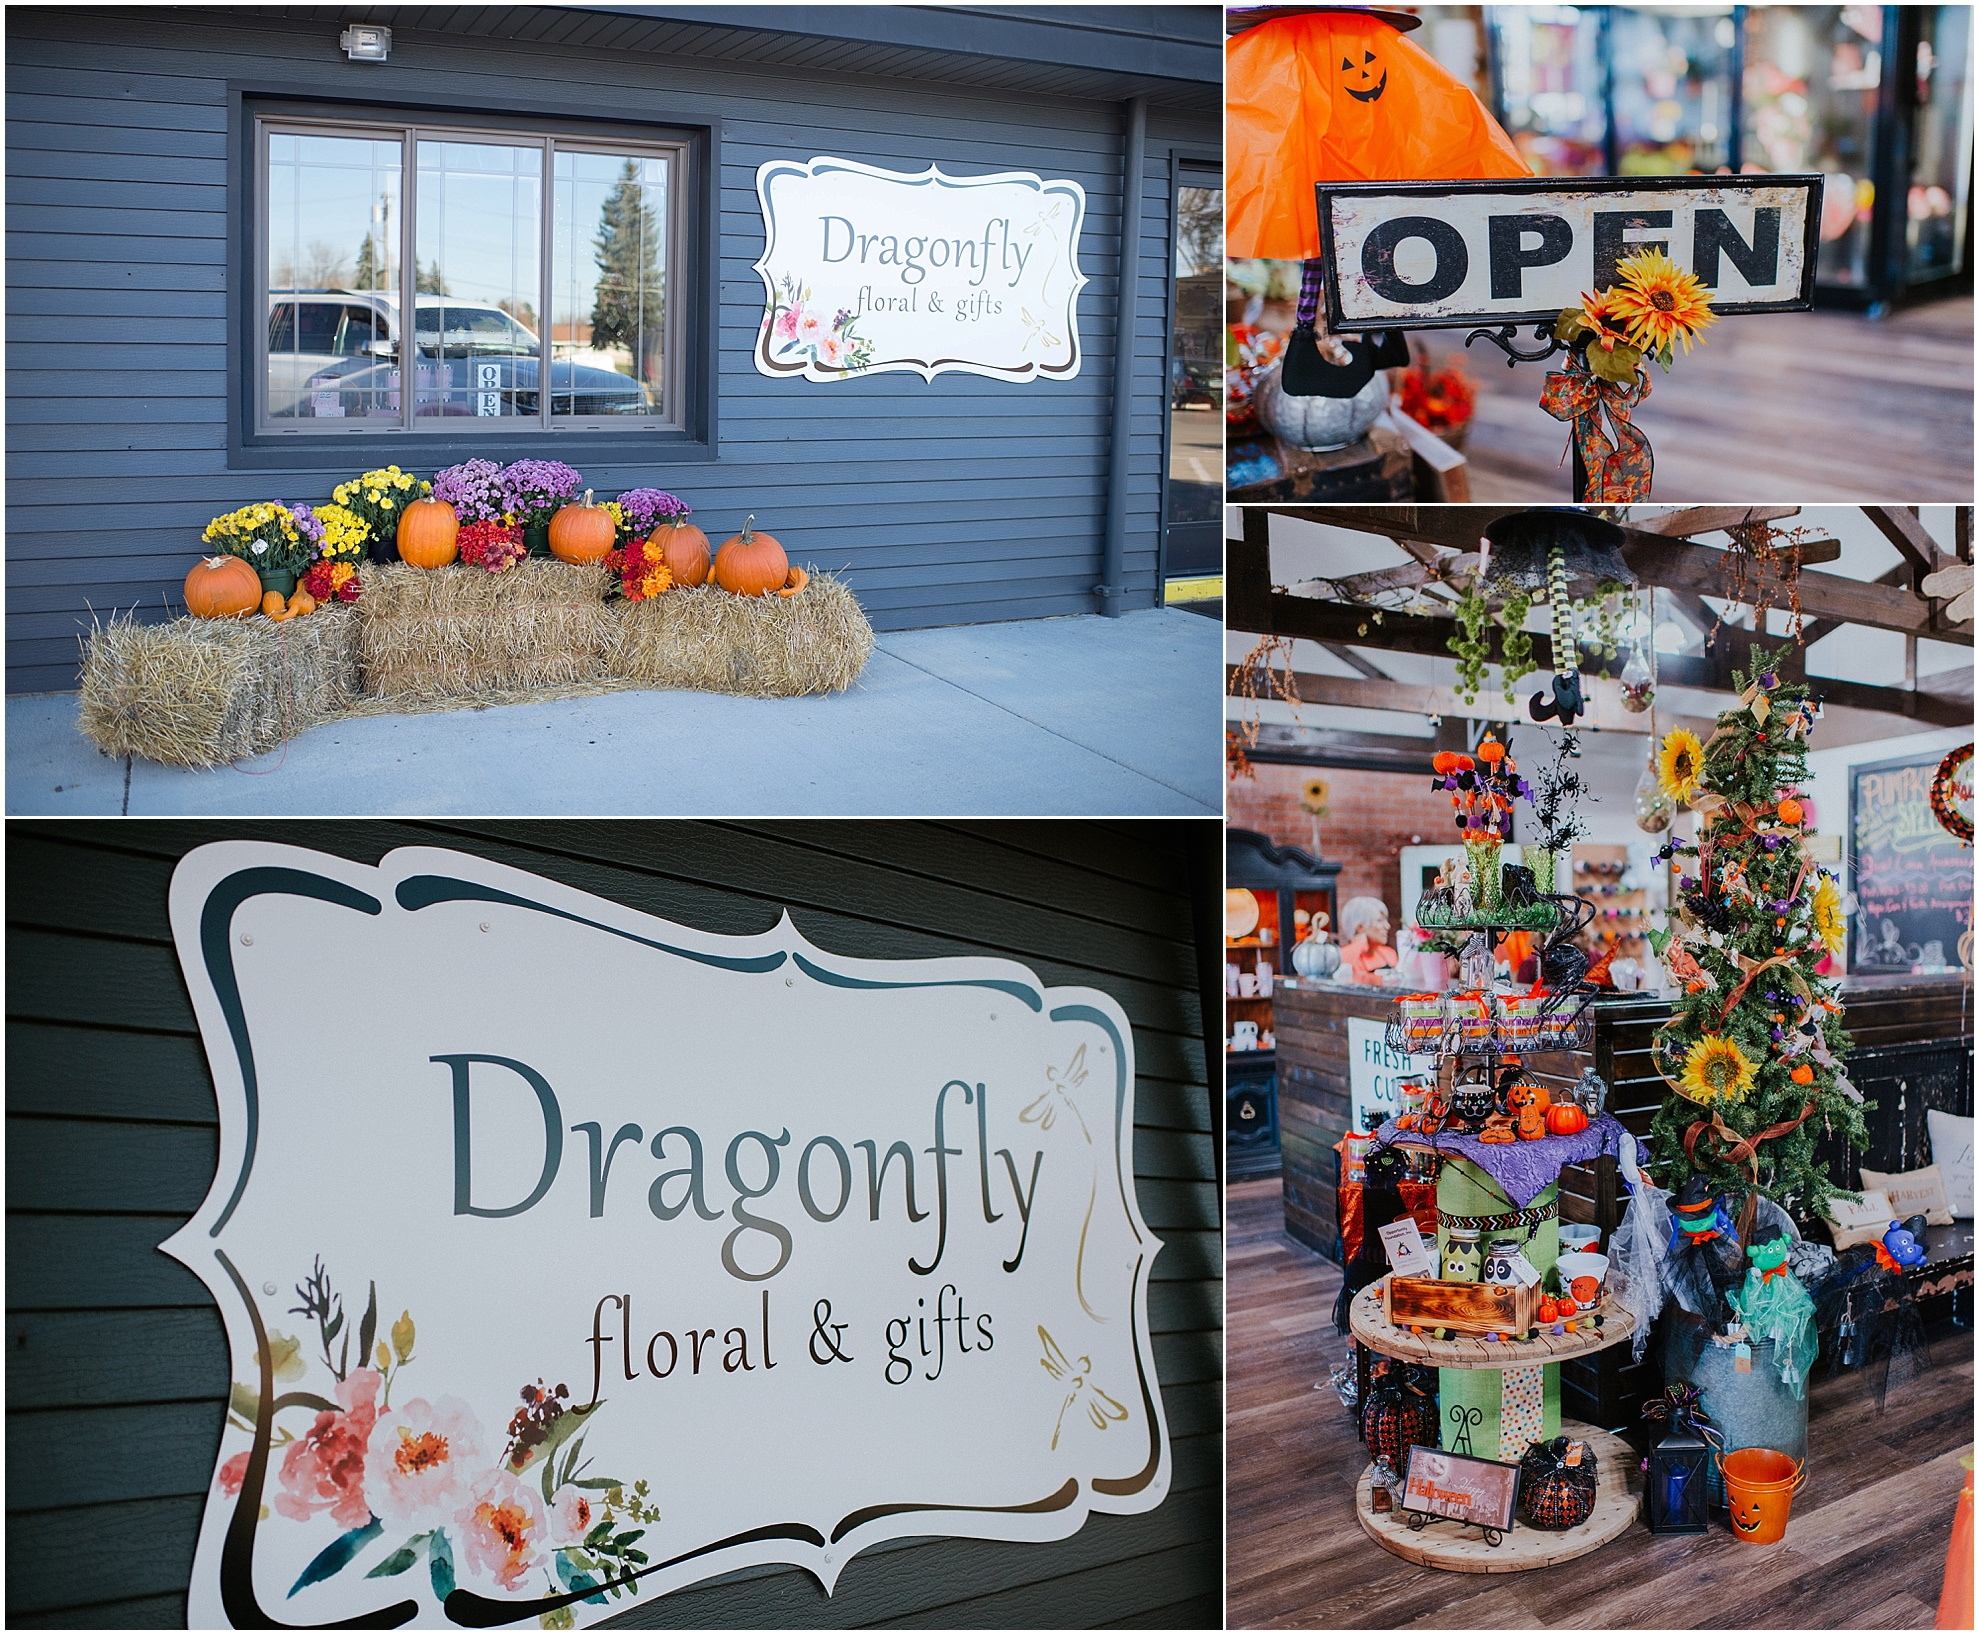 New Flower shop on Main St in Tioga, ND. Offers fresh flowers, and gifts for all seasons